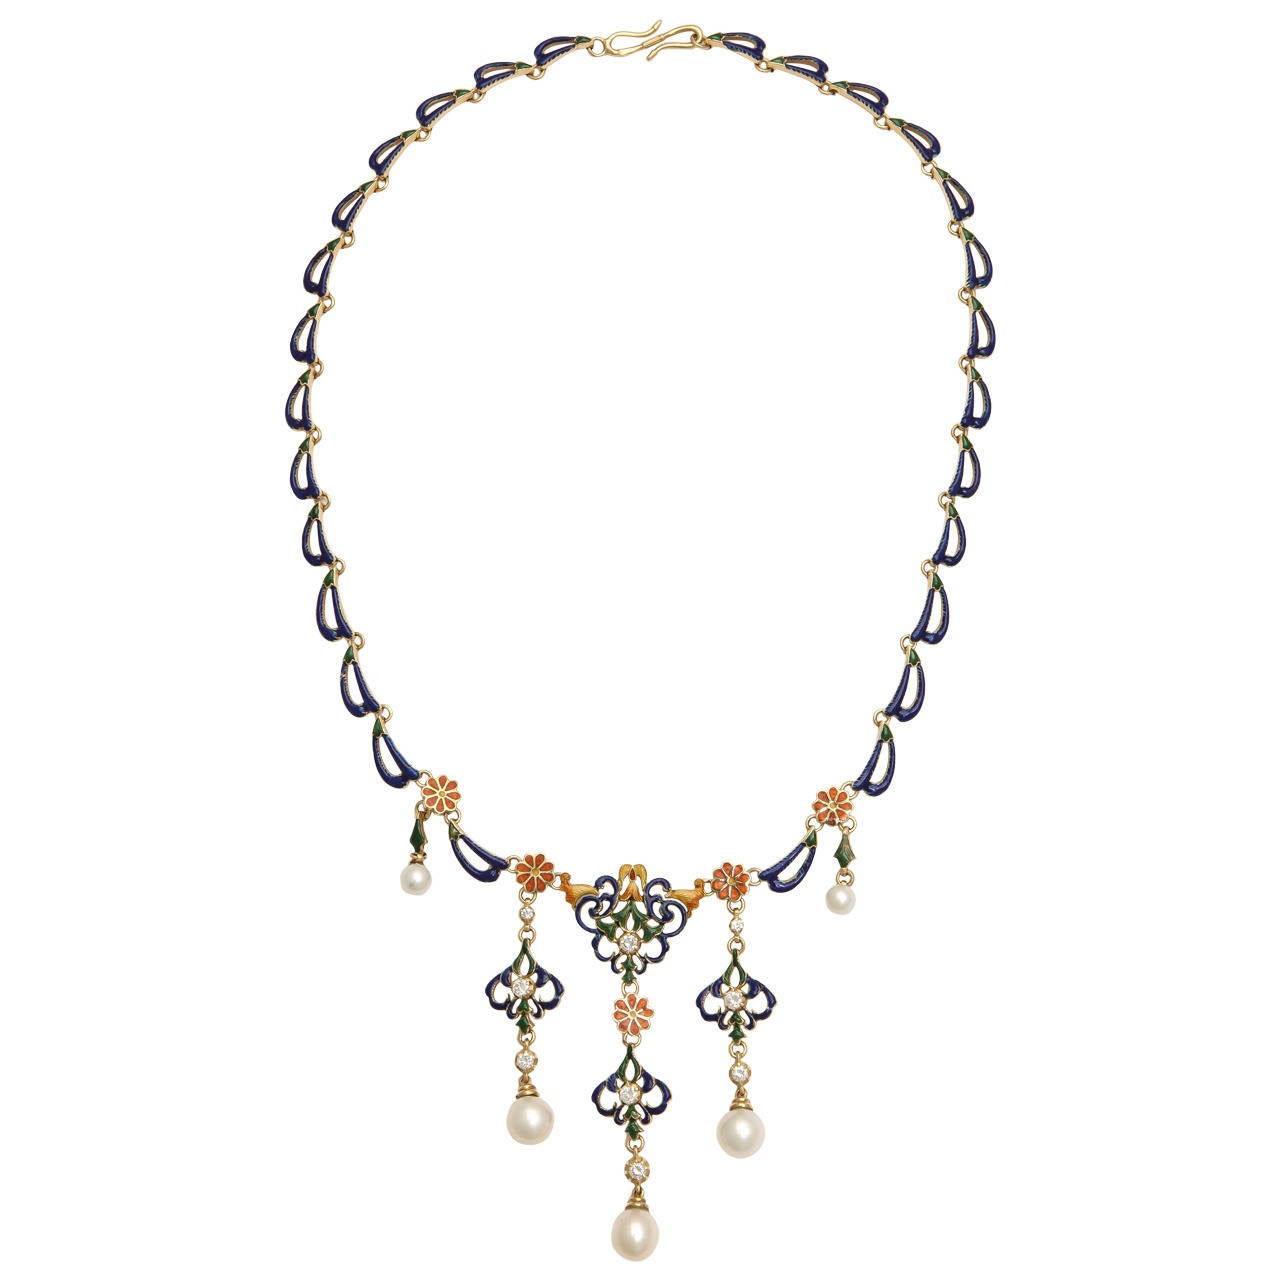 French Enameled Pearl Diamond Gold Byzantine Style Necklace For Sale 5